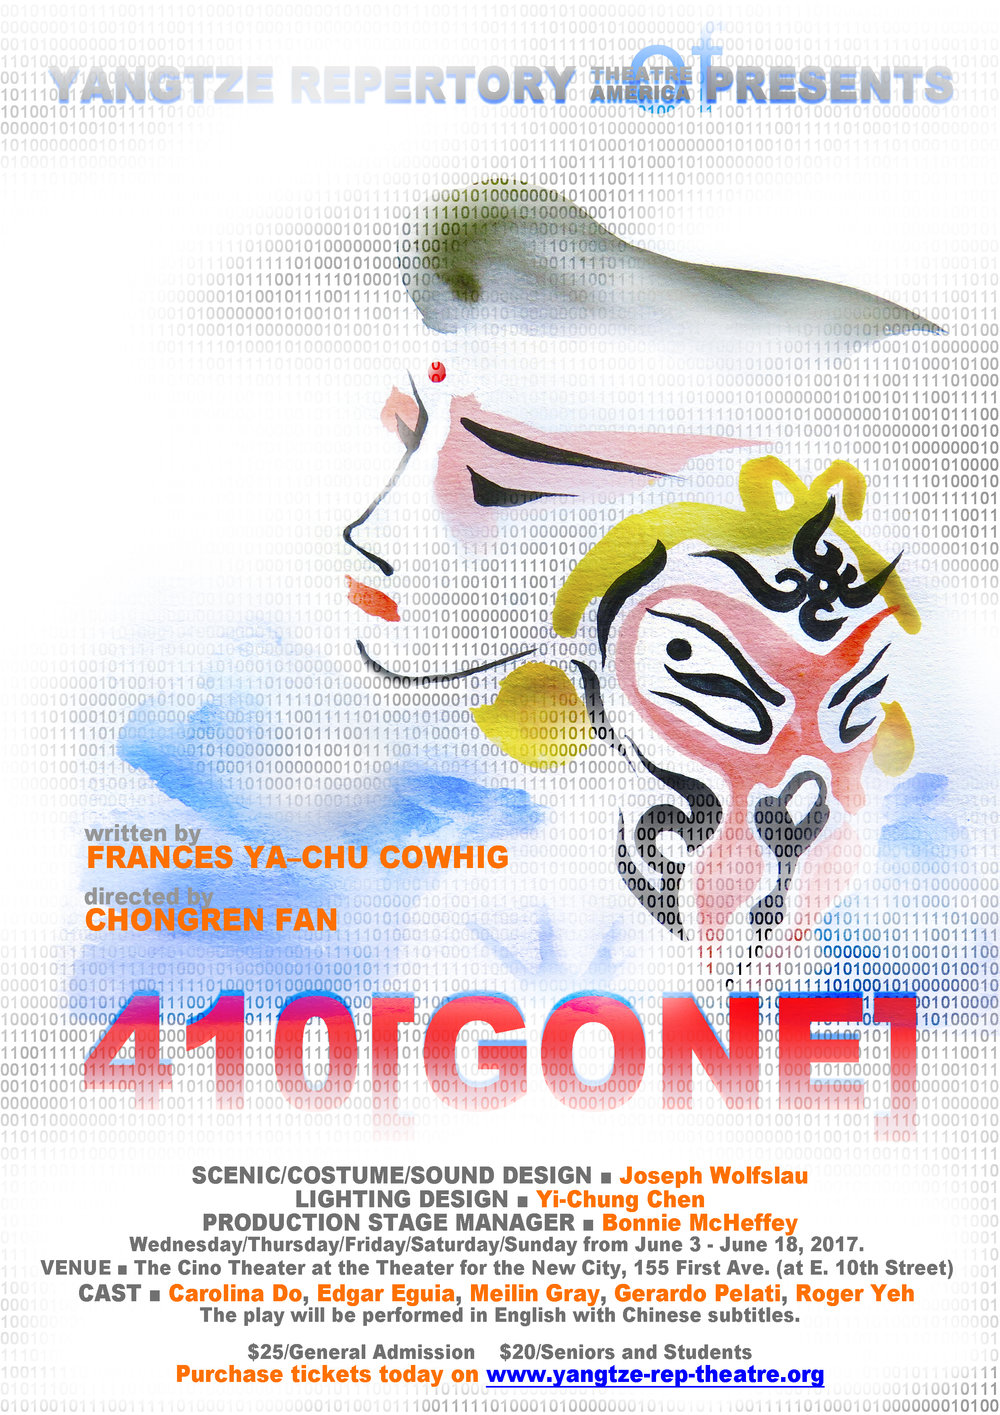 410[GONE] - (NY PREMIERE)written by Frances Ya-Chu Cowhigdirected by Chongren Fanproduced by Yangtze Repertory Theatre of AmericaVenue: Cino Theater at Theater for the New CityTime: June 3rd-18th, 2017Scenic/Costume/Sound Design: Joseph WolfslauLighting Design: Yi-Chung ChenProduction Stage Manager: Bonnie McHeffeyCast: Carolina Do, Edgar Eguia, Meilin Gray, Gerardo Pelati, Roger Yeh.